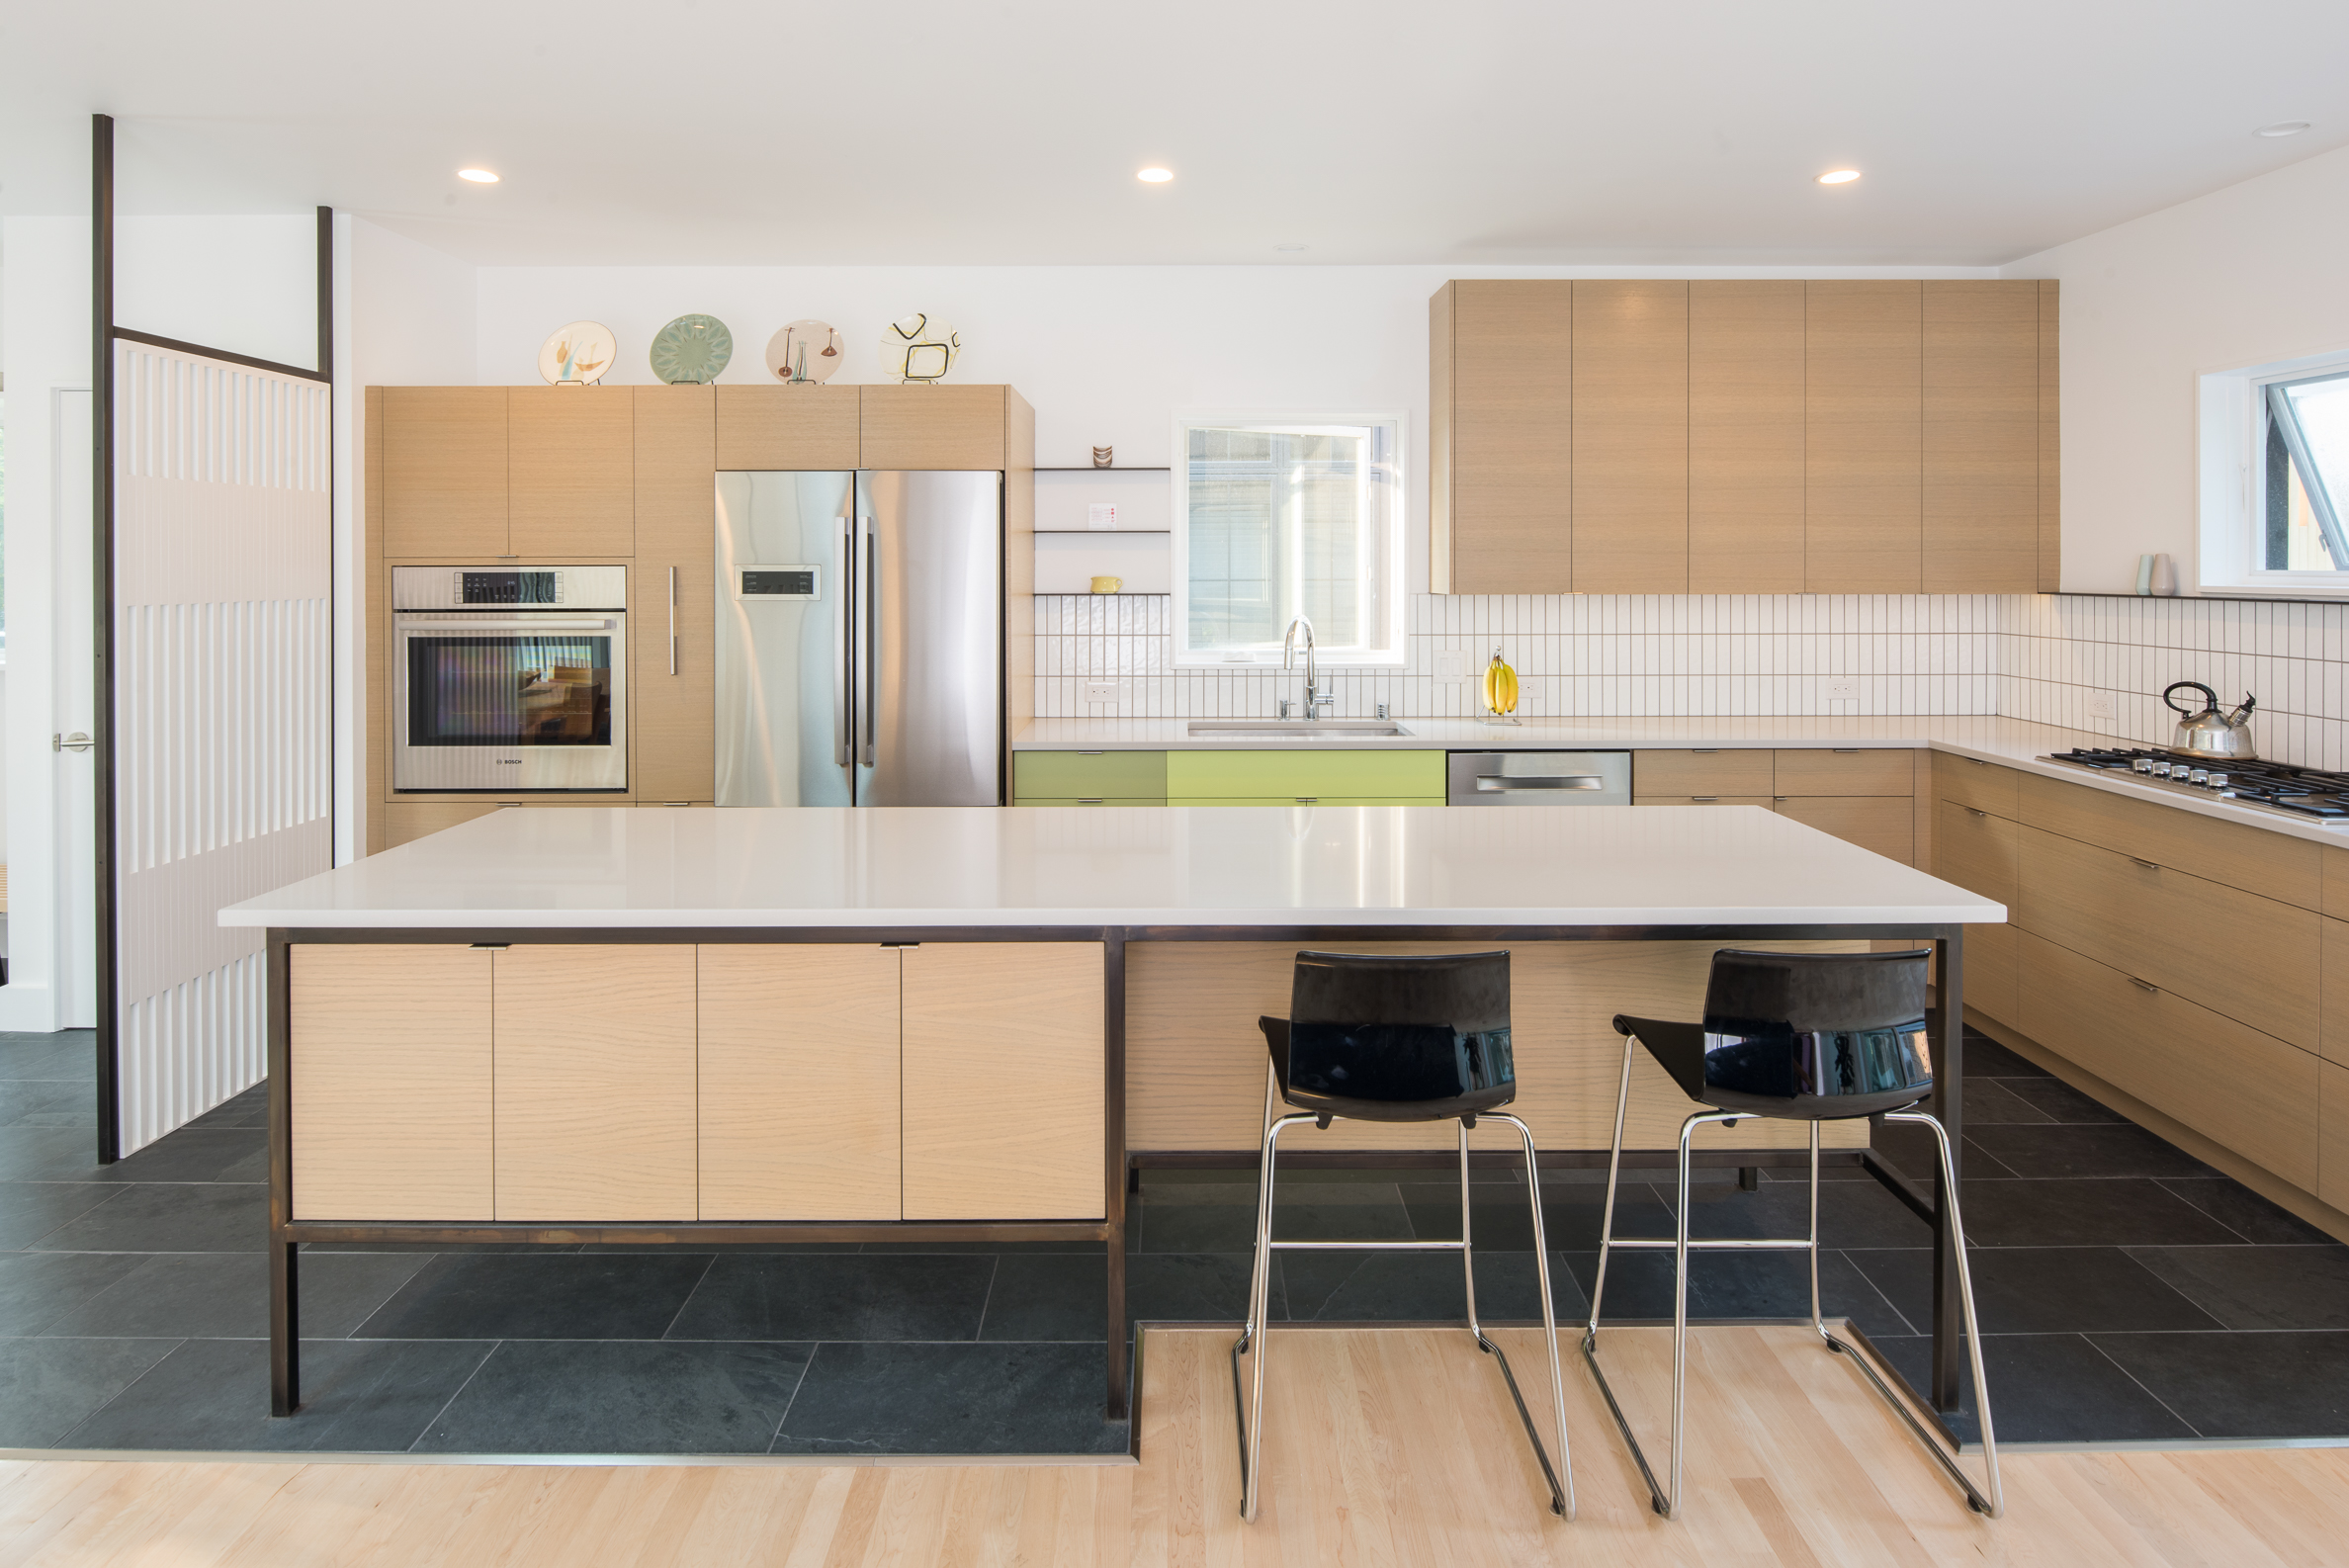 Custom mid-century kitchen design with colorful cabinetry and steel accents